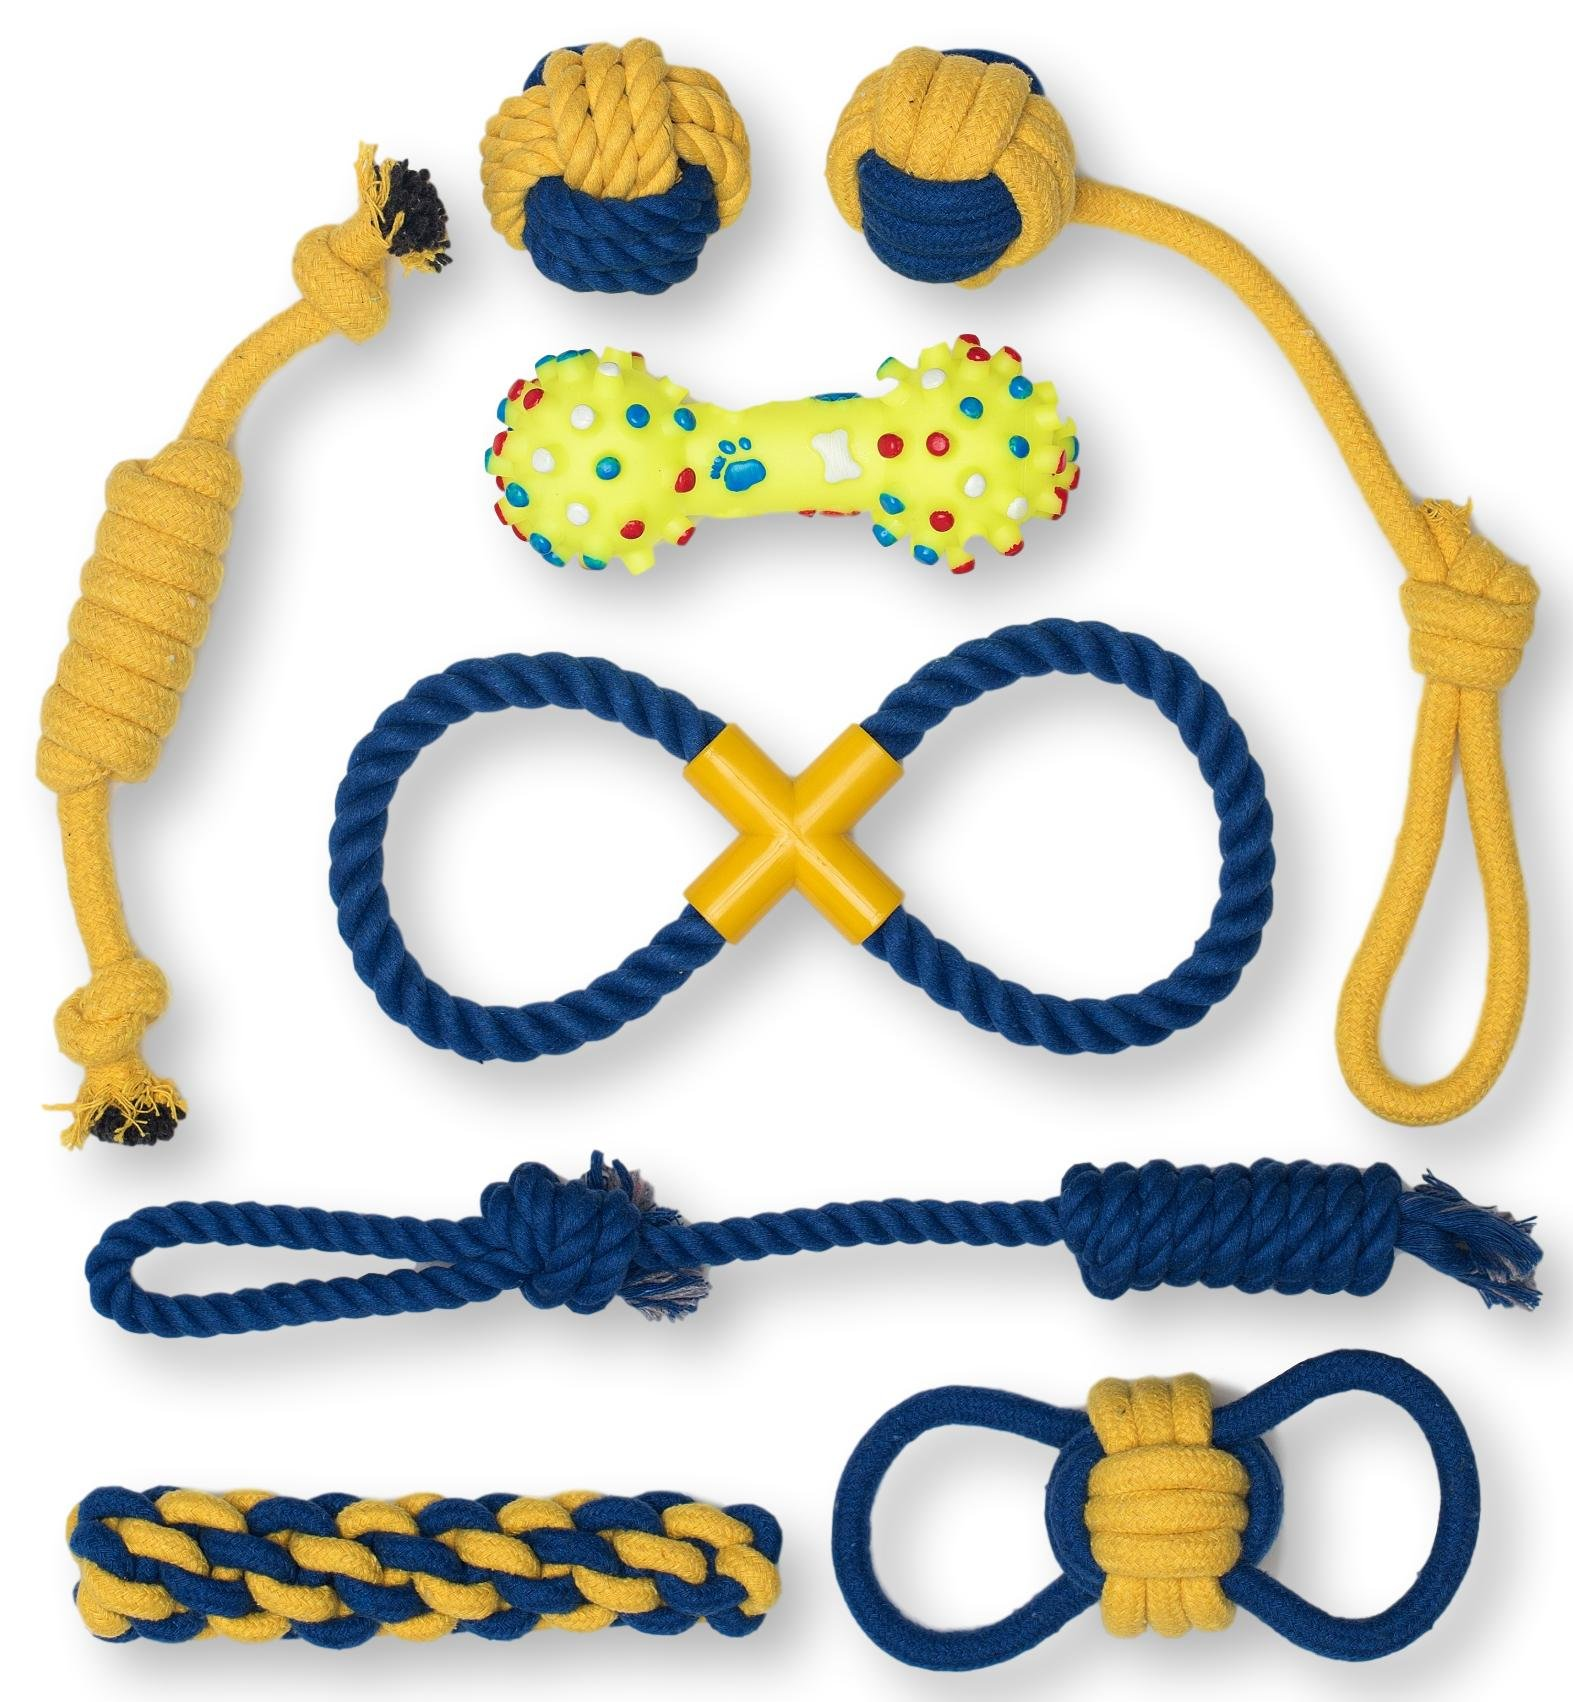 Premium Indoor and Outdoor Dog Toys Set by Terrier Chewz. Suitable Rope and Rubber Chew Toys for Small Breed Dogs and Puppys. Durable and Washable. Pack of 8